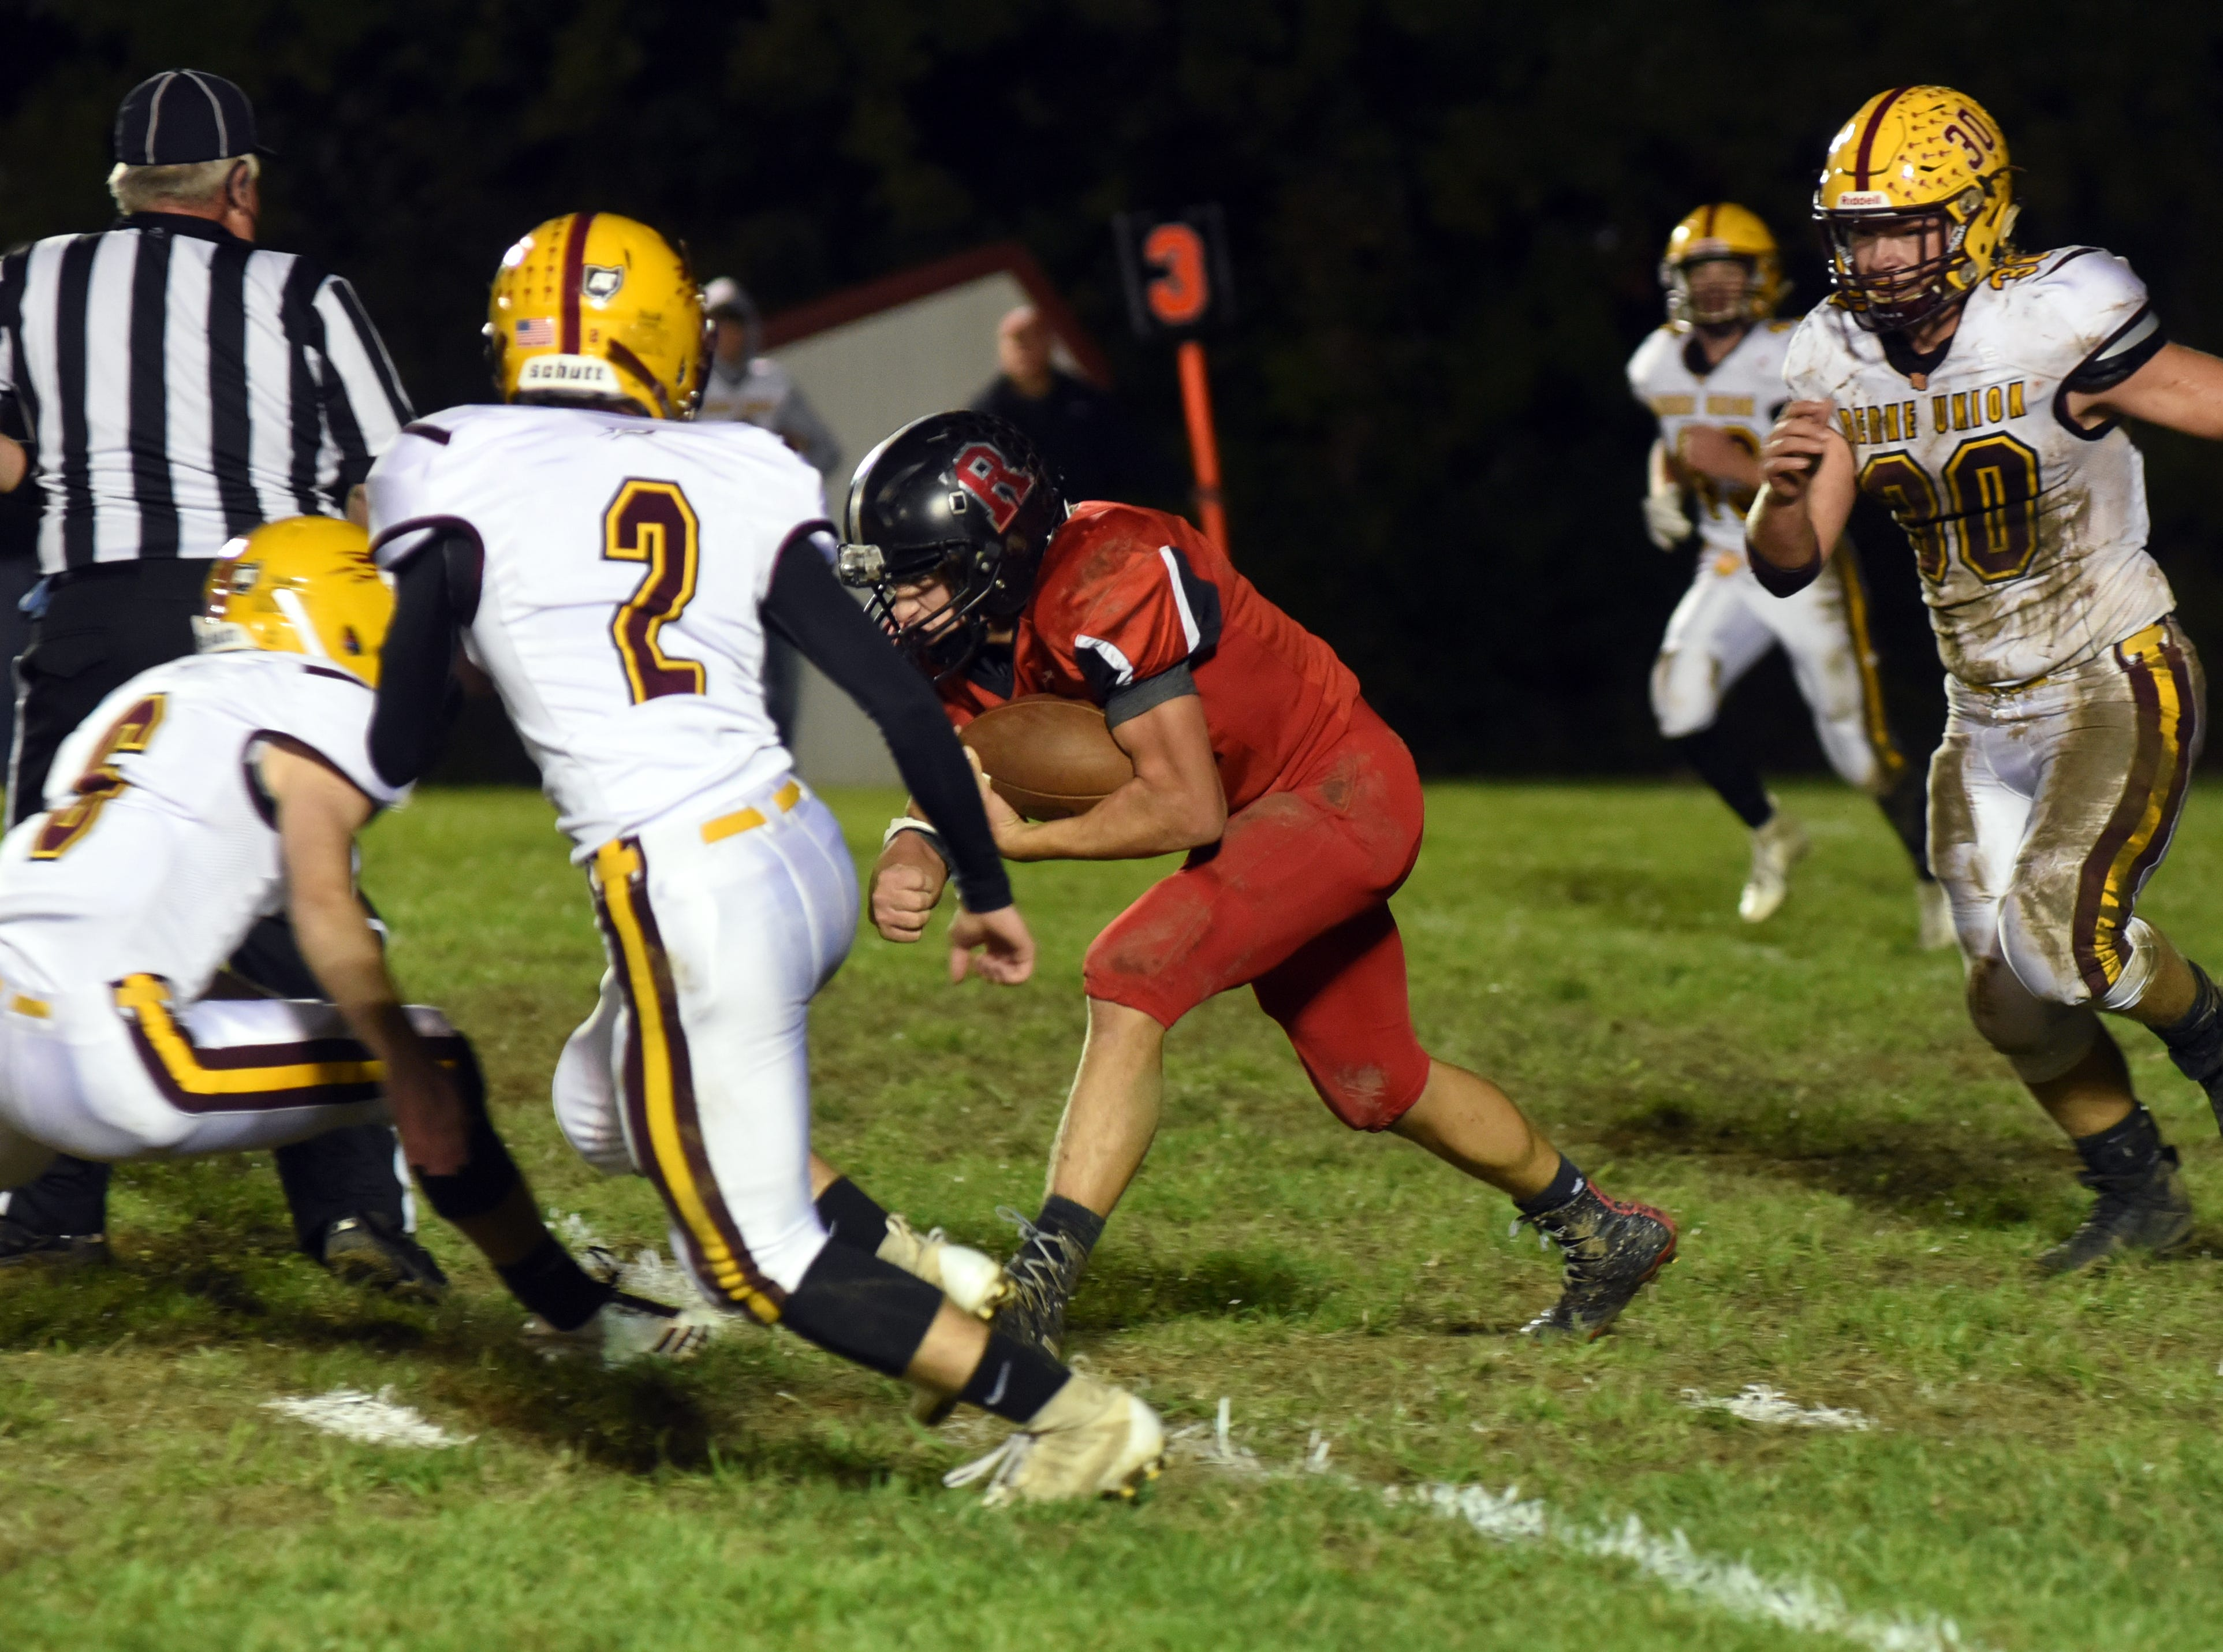 Rosecrans' Austin Church takes on Berne Union's Chase McCartney (6) with Landon Godenschwager (2) helping in Berne Union's 41-14 win on Friday.